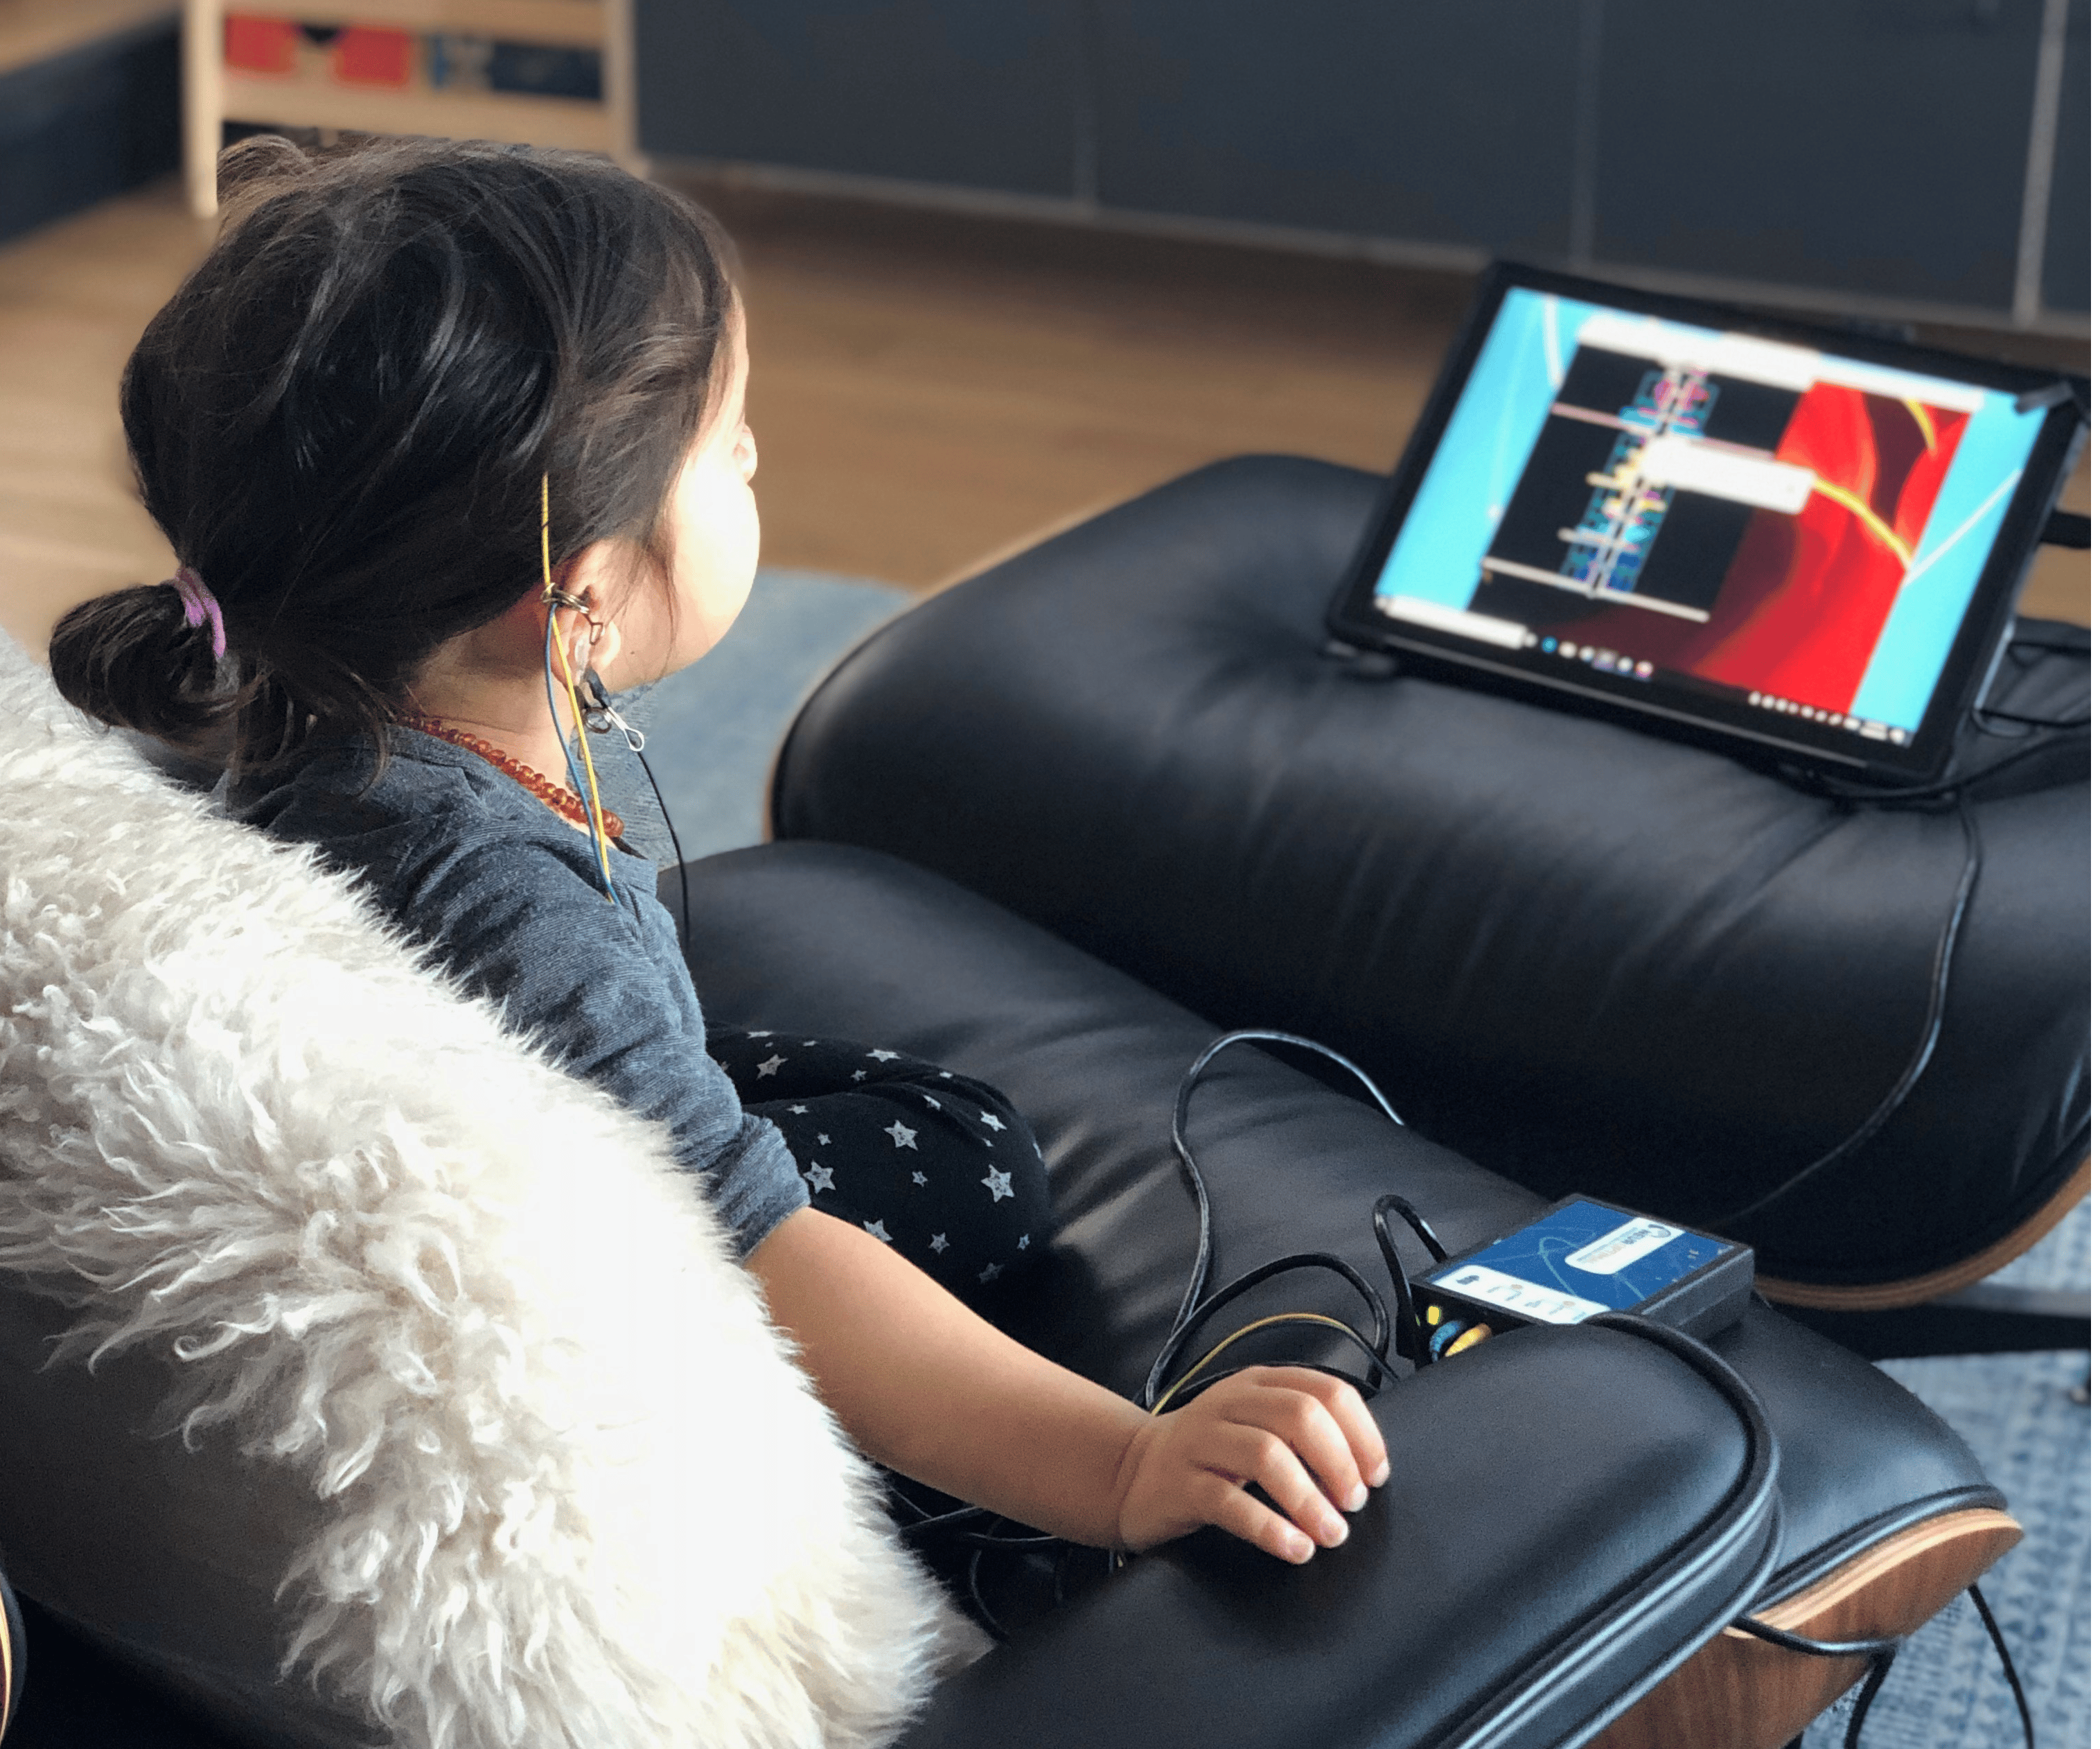 safe-neurofeedback-for-children-rent-a-neuroptimal-system